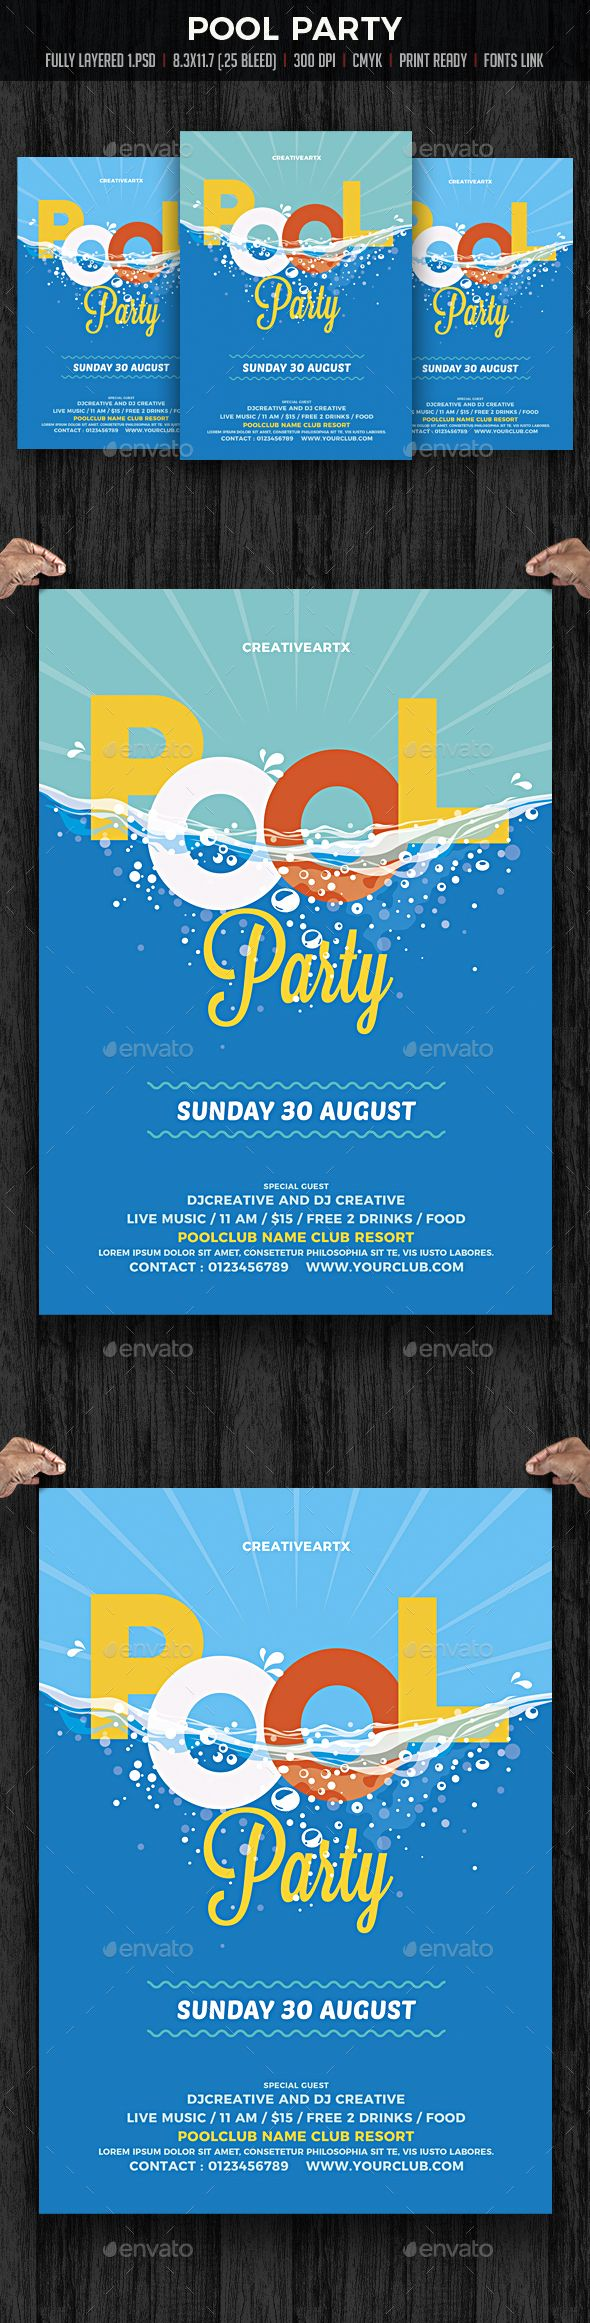 Pool Party / Beach #Party - Clubs & Parties #Events Download here: https://graphicriver.net/item/pool-party-beach-party/19717080?ref=alena994